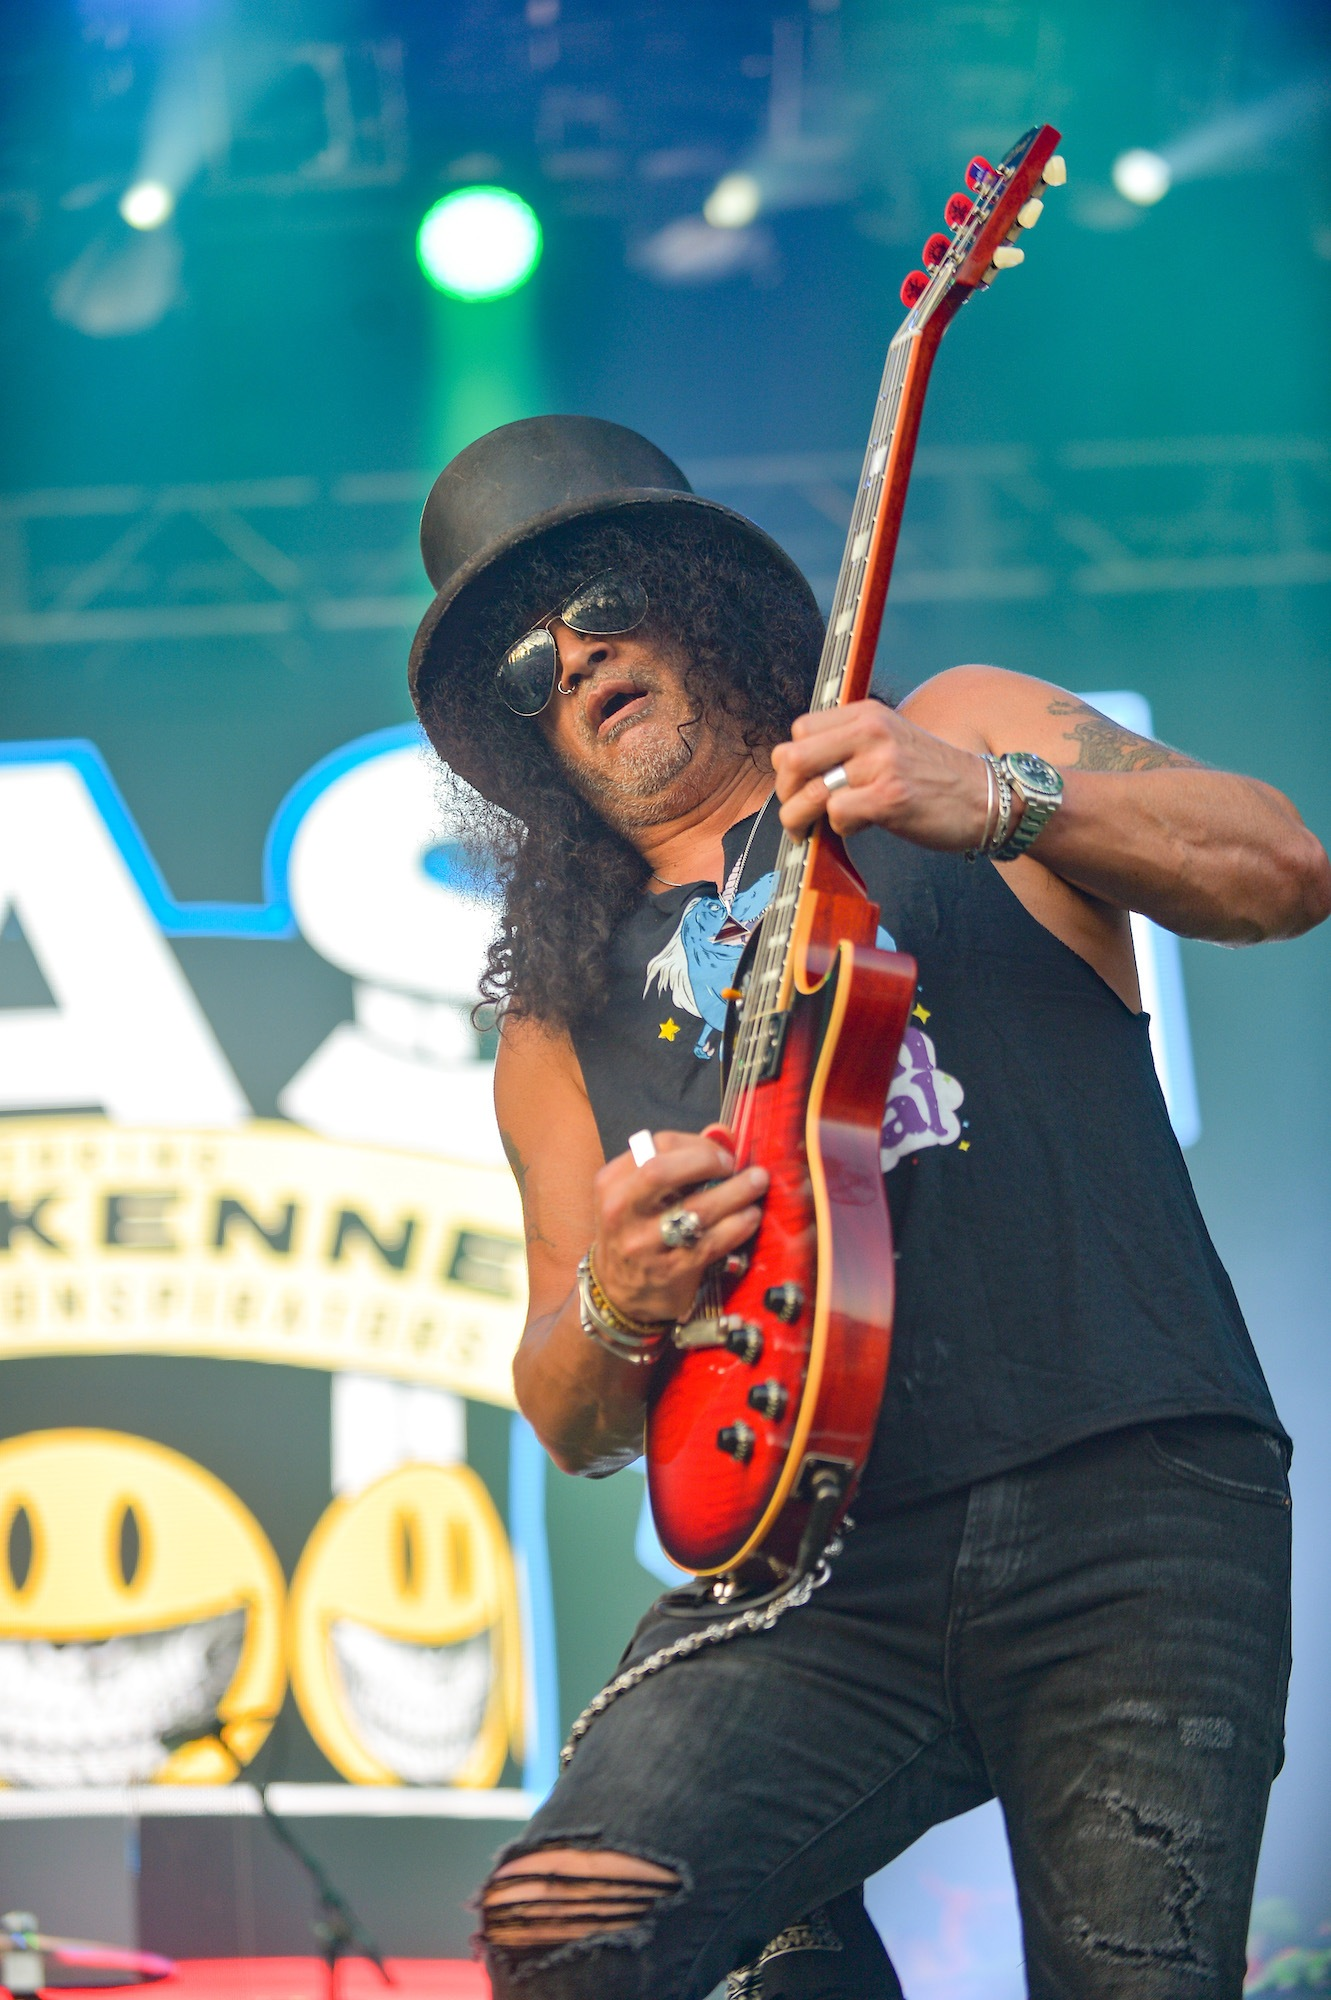 SLASH Featuring Myles Kennedy And The Conspirators Live at Lollapalooza [GALLERY] 13